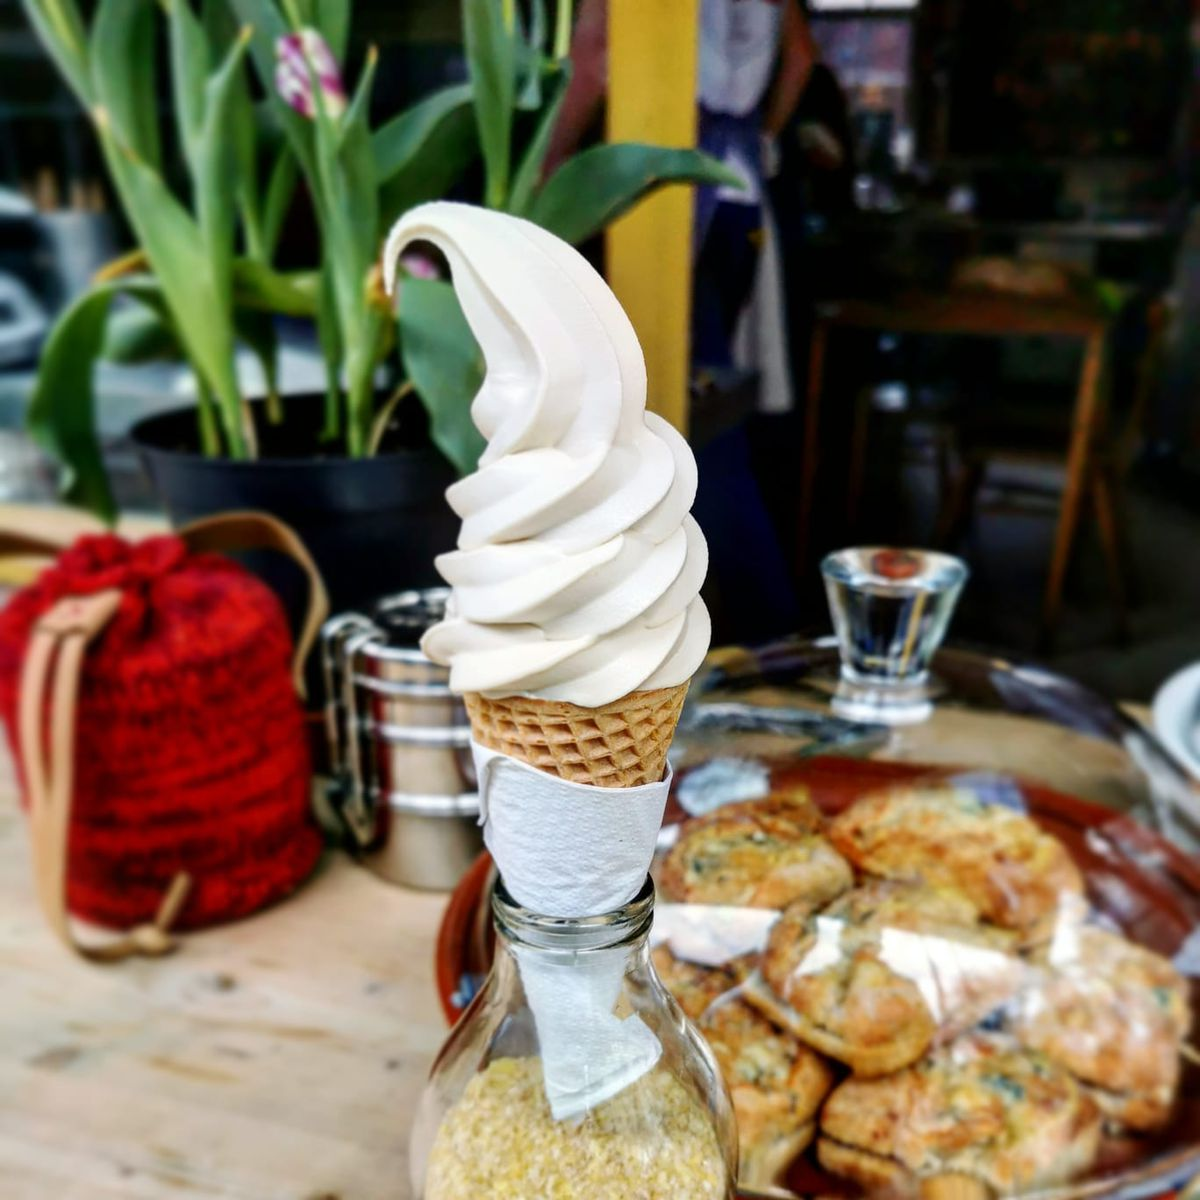 A cone of hazelnut soft serve sits in a glass bottle filled with sand, with pastries, a pot plant, and a red rattan fabric in the background